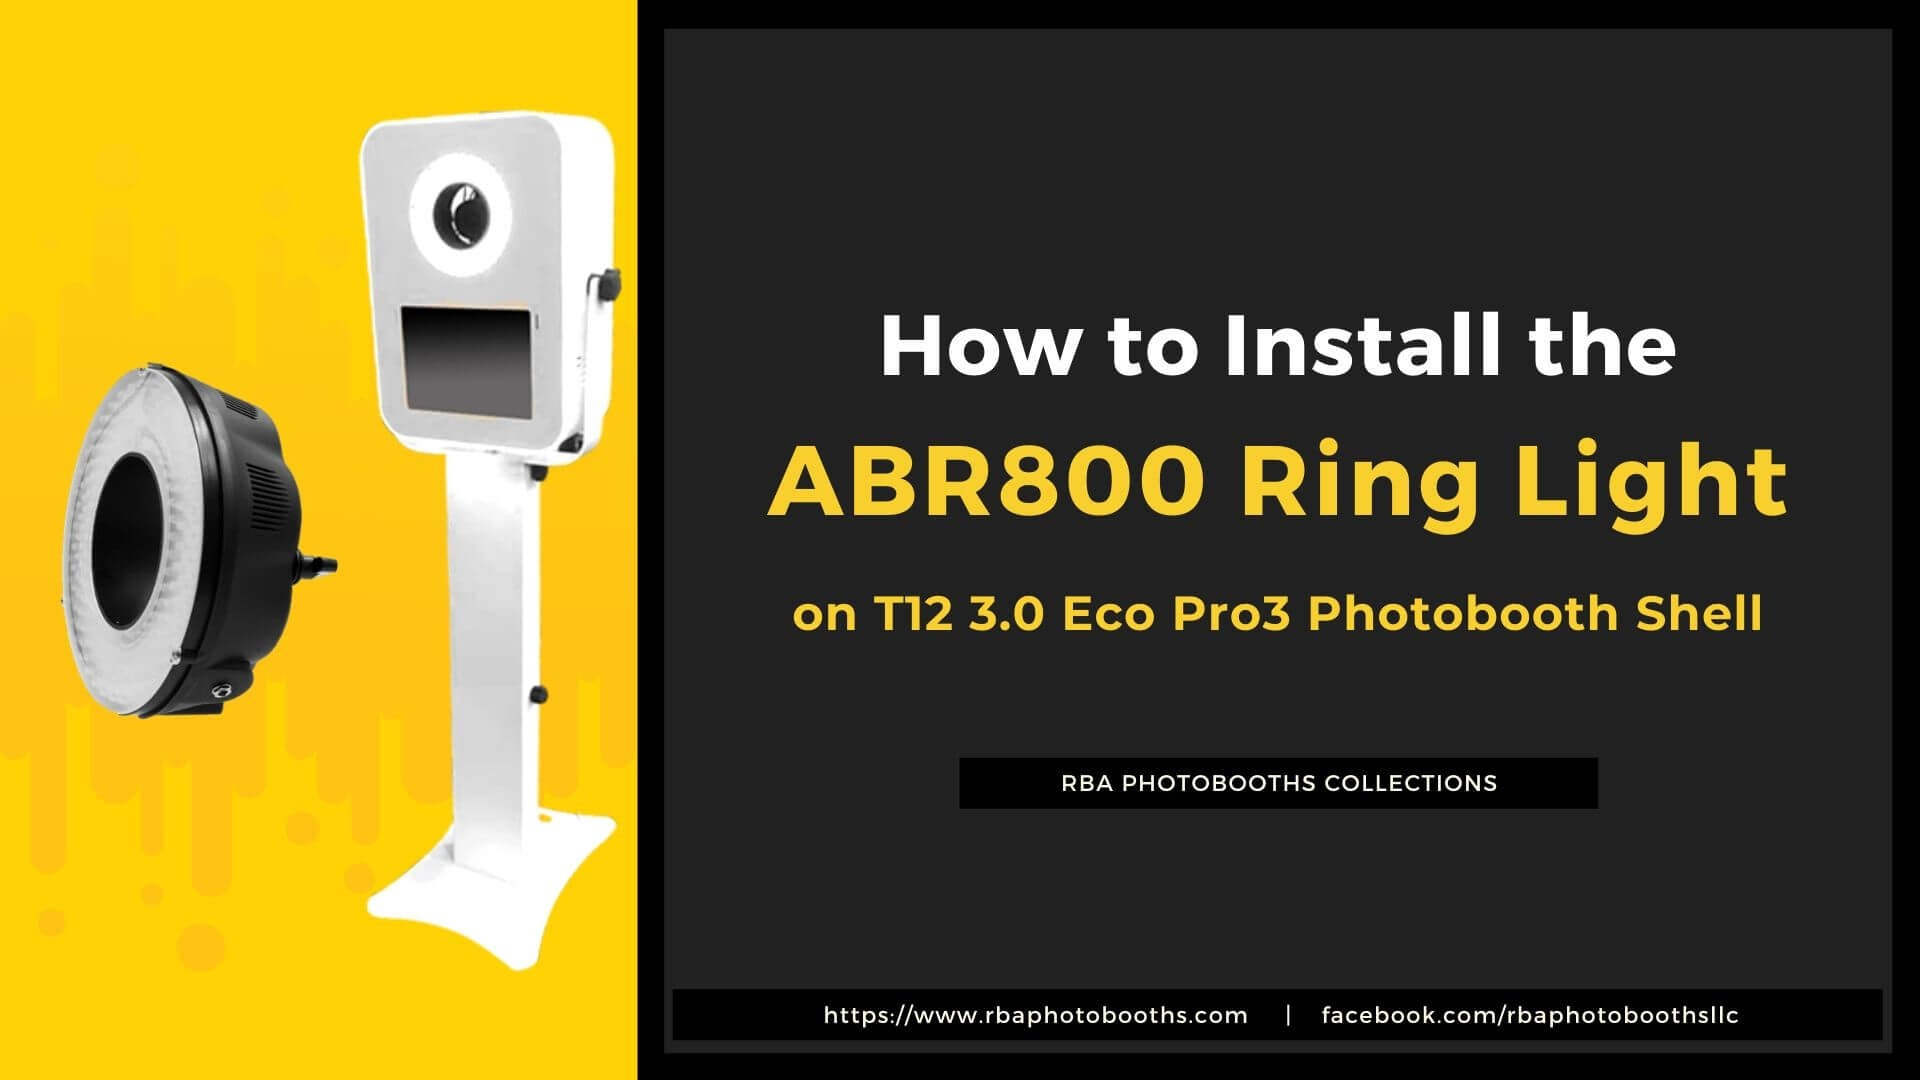 How To Install The ABR800 Ring Light On The T12 3.0 Eco Pro3 Photobooth Shell Enclosure